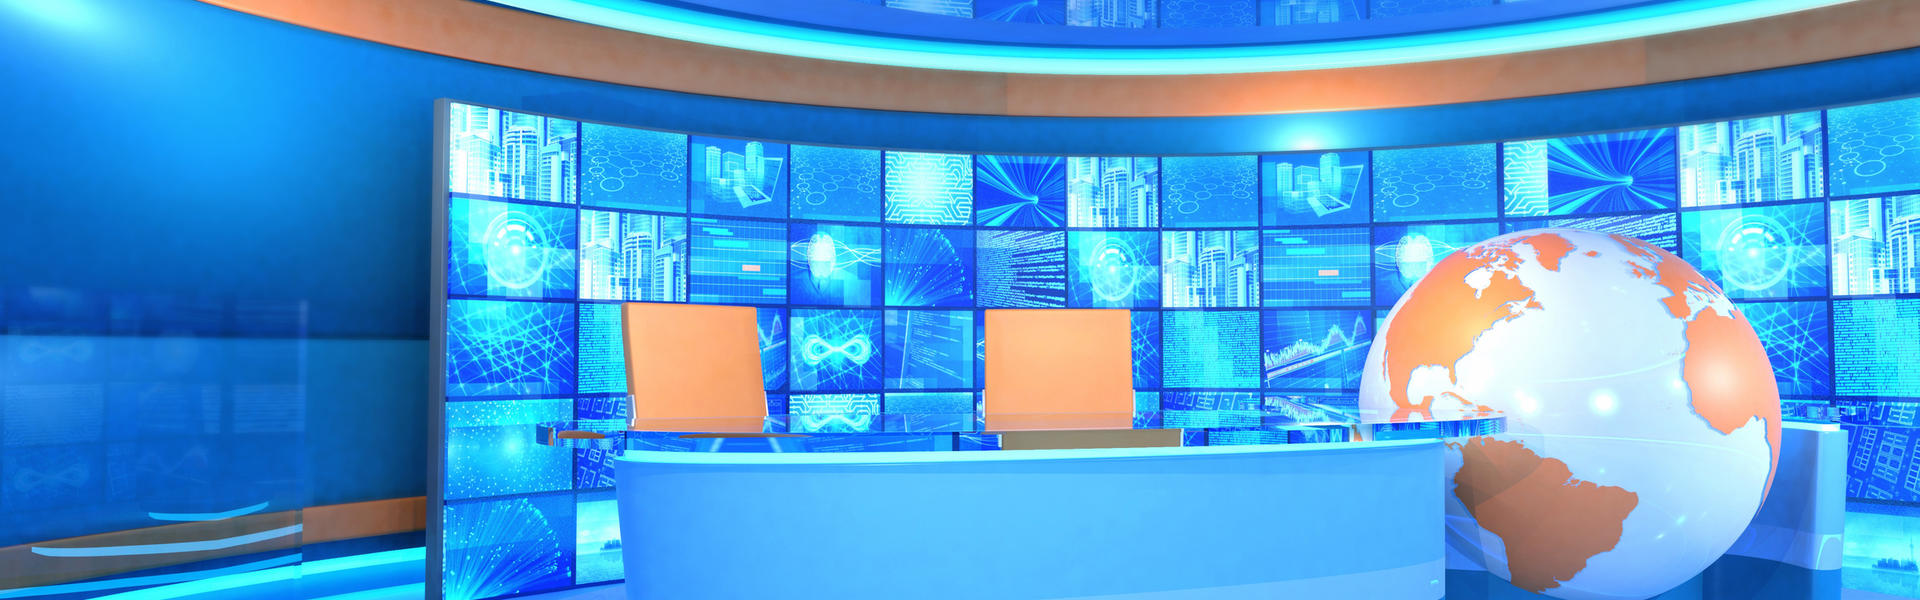 digital newsdesk